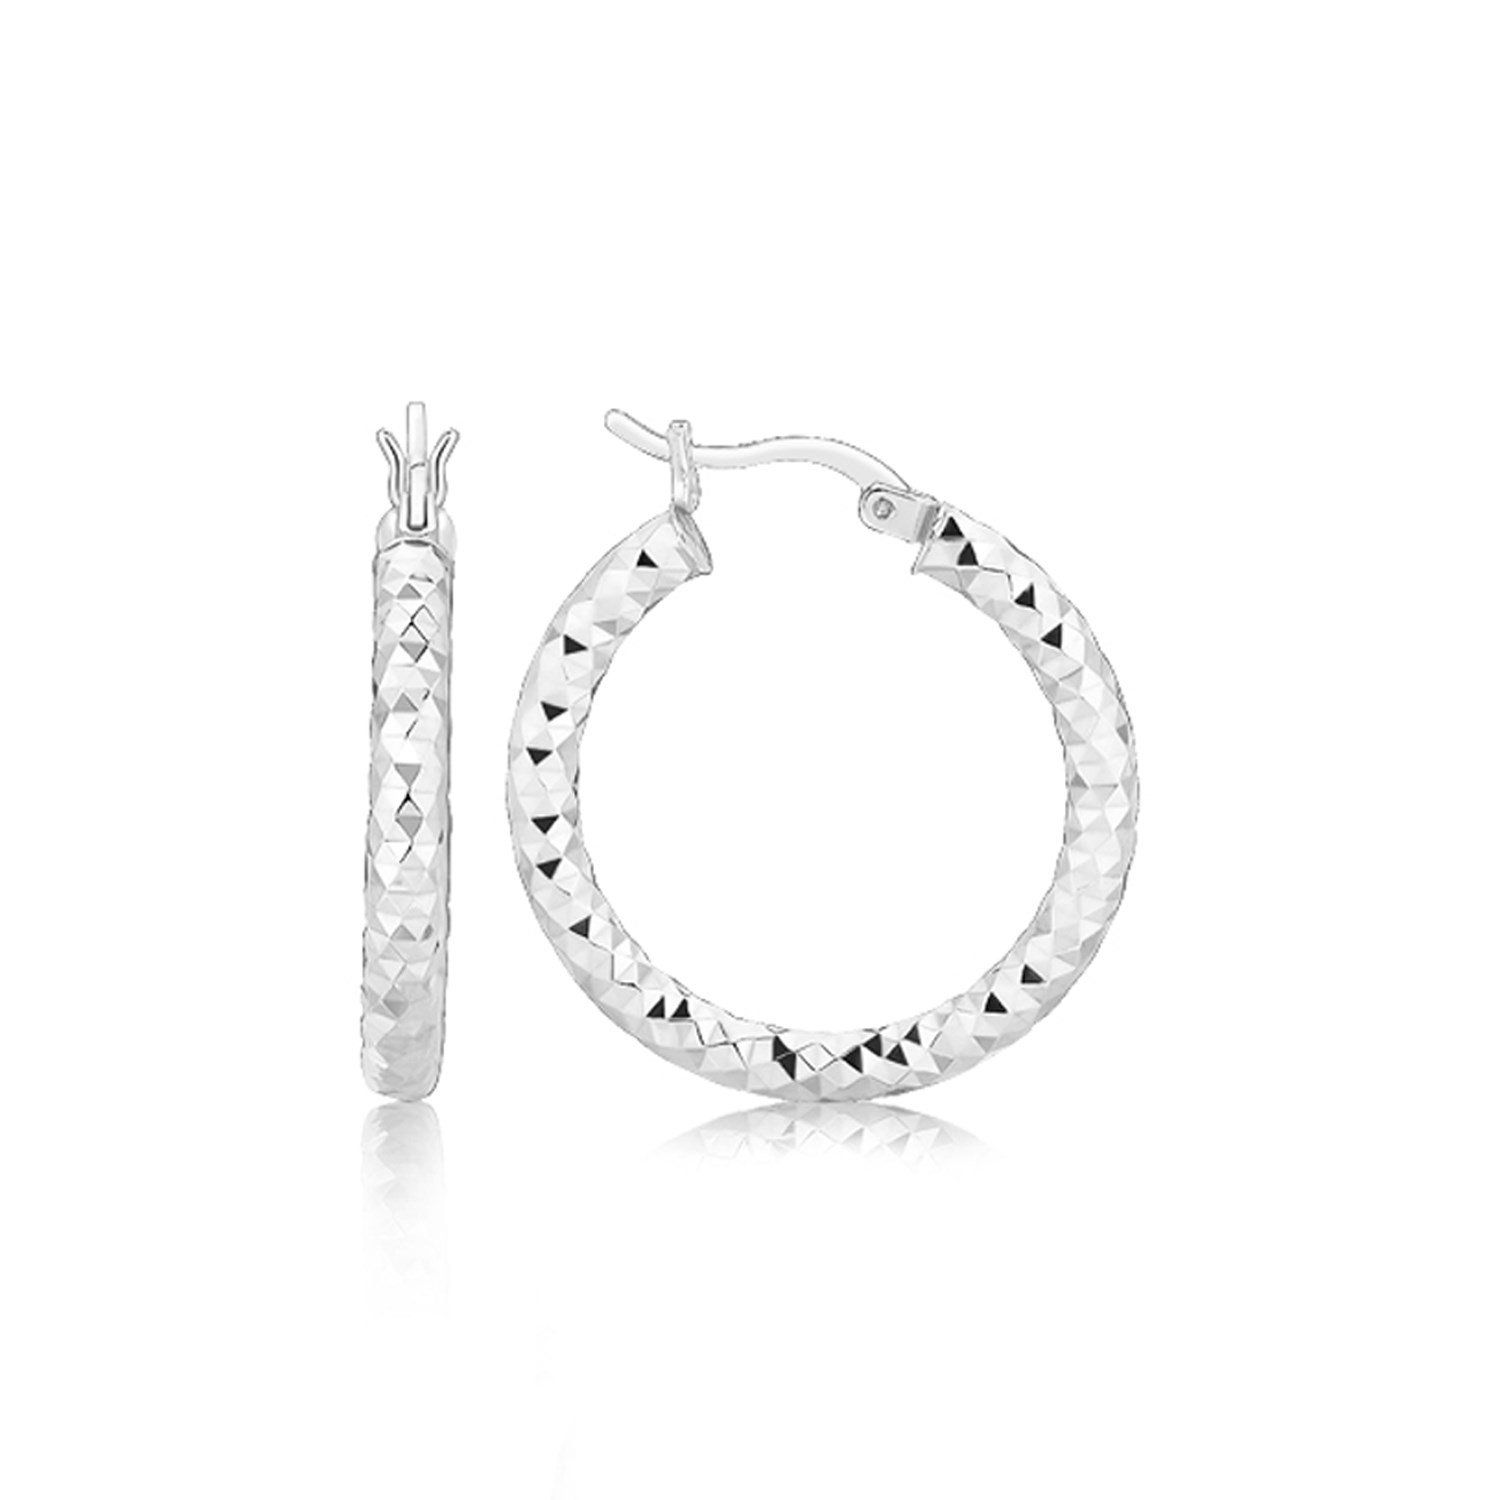 aeb982b7b Faceted detailing renders these hoop earrings positively chic and sparkly.  A darling pair designed in rhodium plated sterling silver.